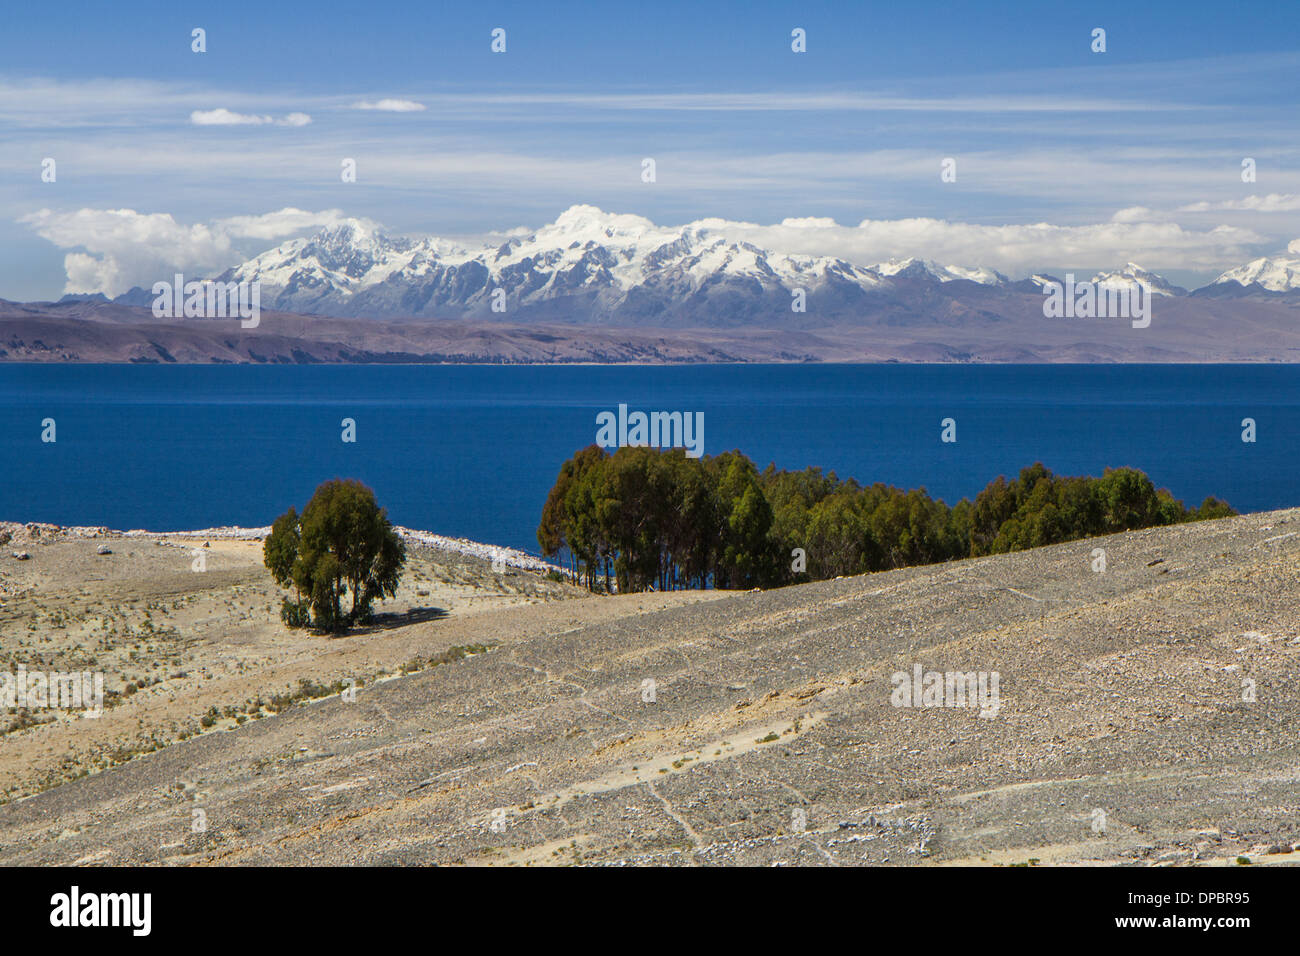 Titicaca lake, view towards the bolivian Andes. Cordillera Real. - Stock Image